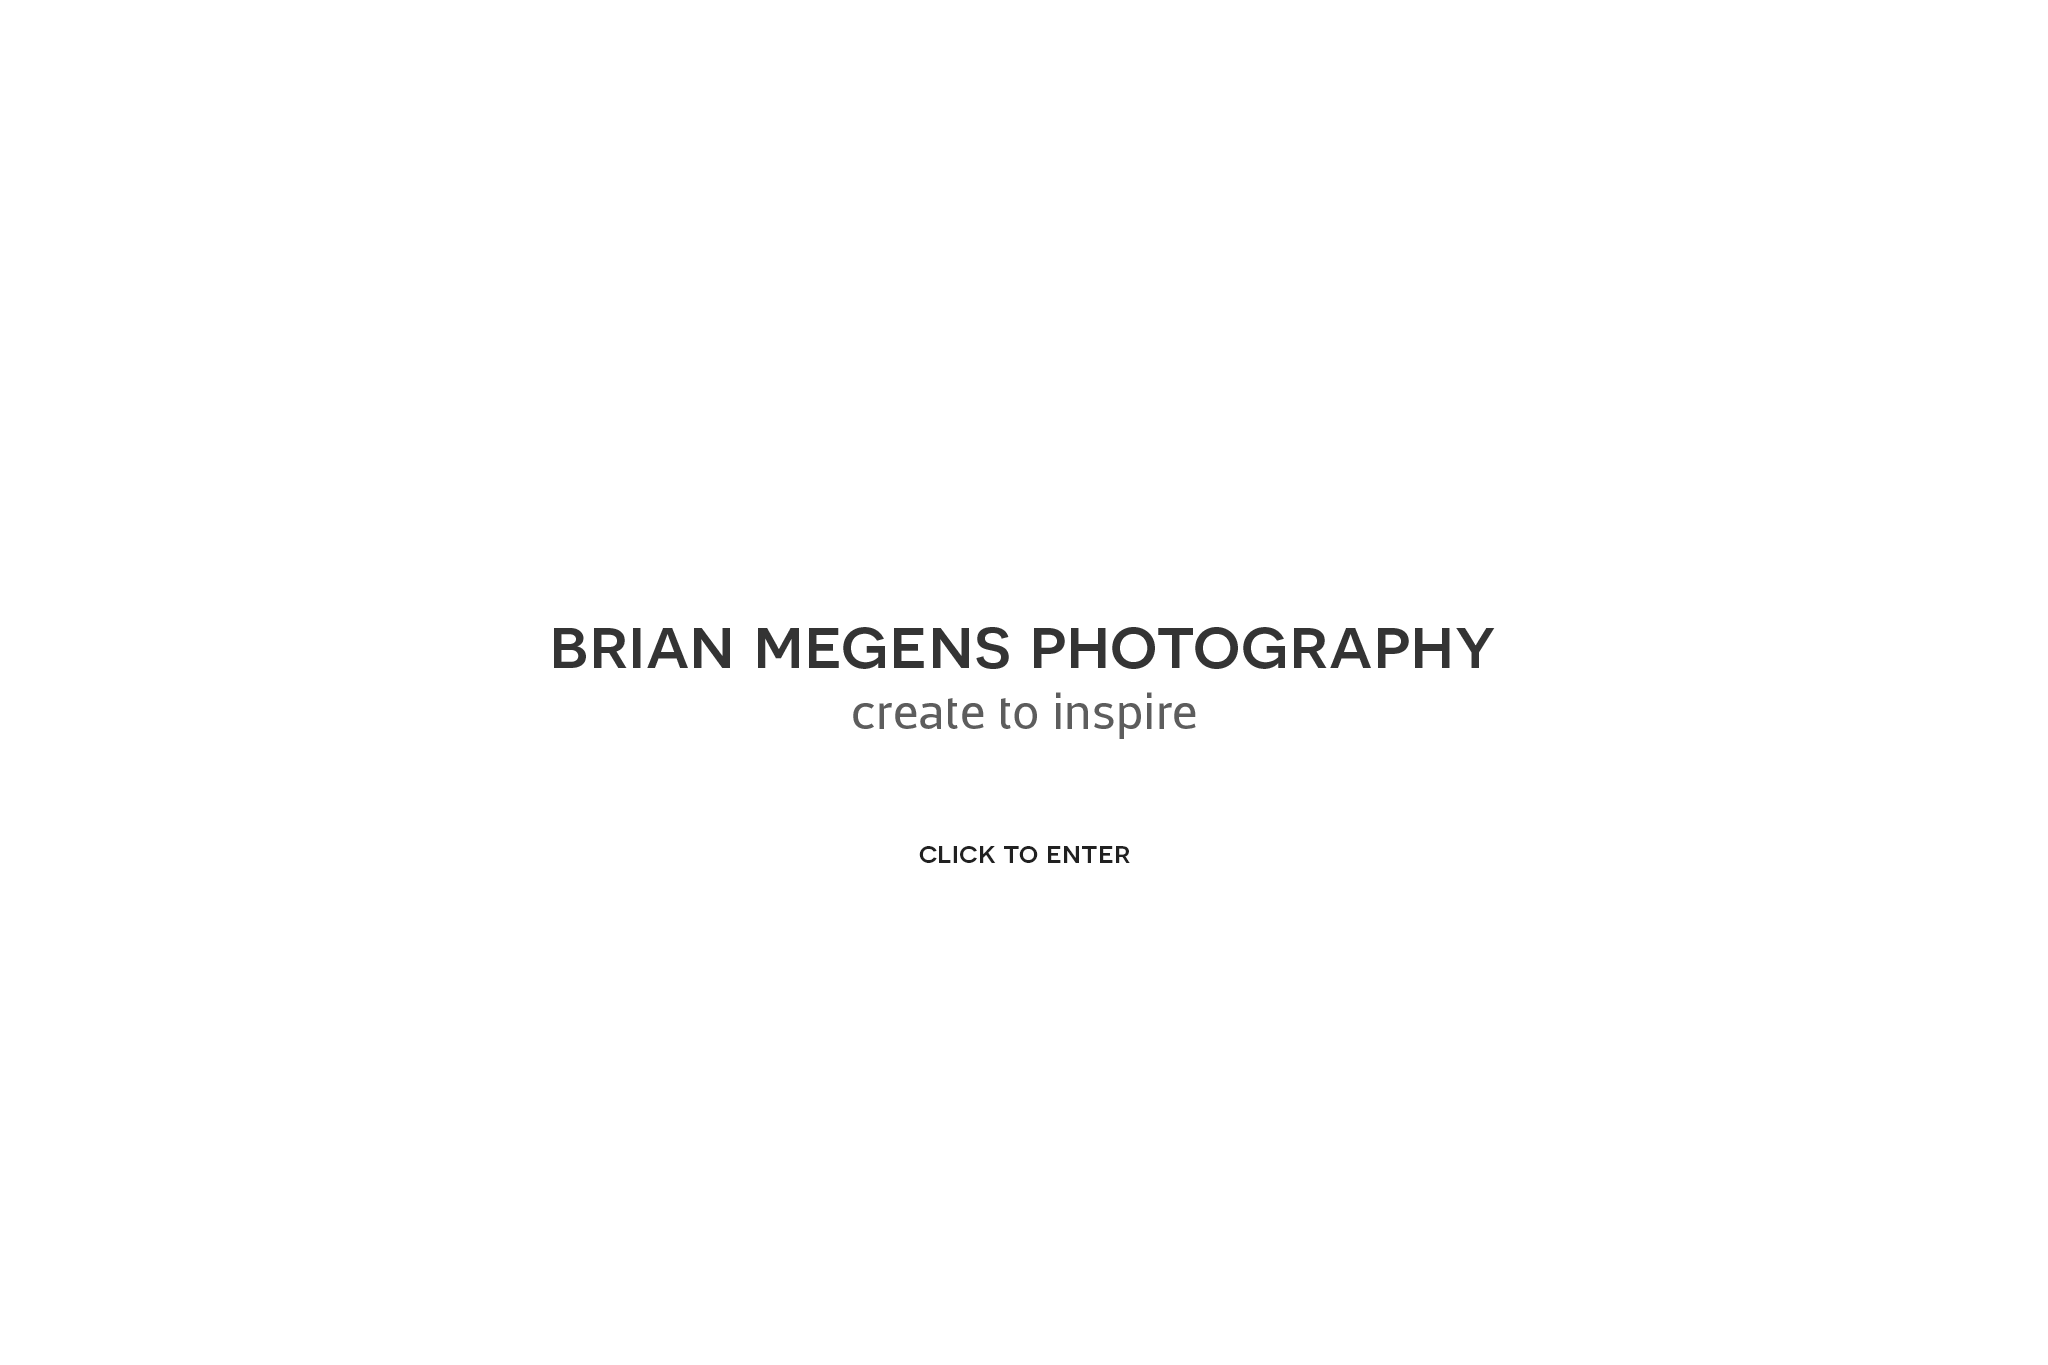 Brian Megens Photography